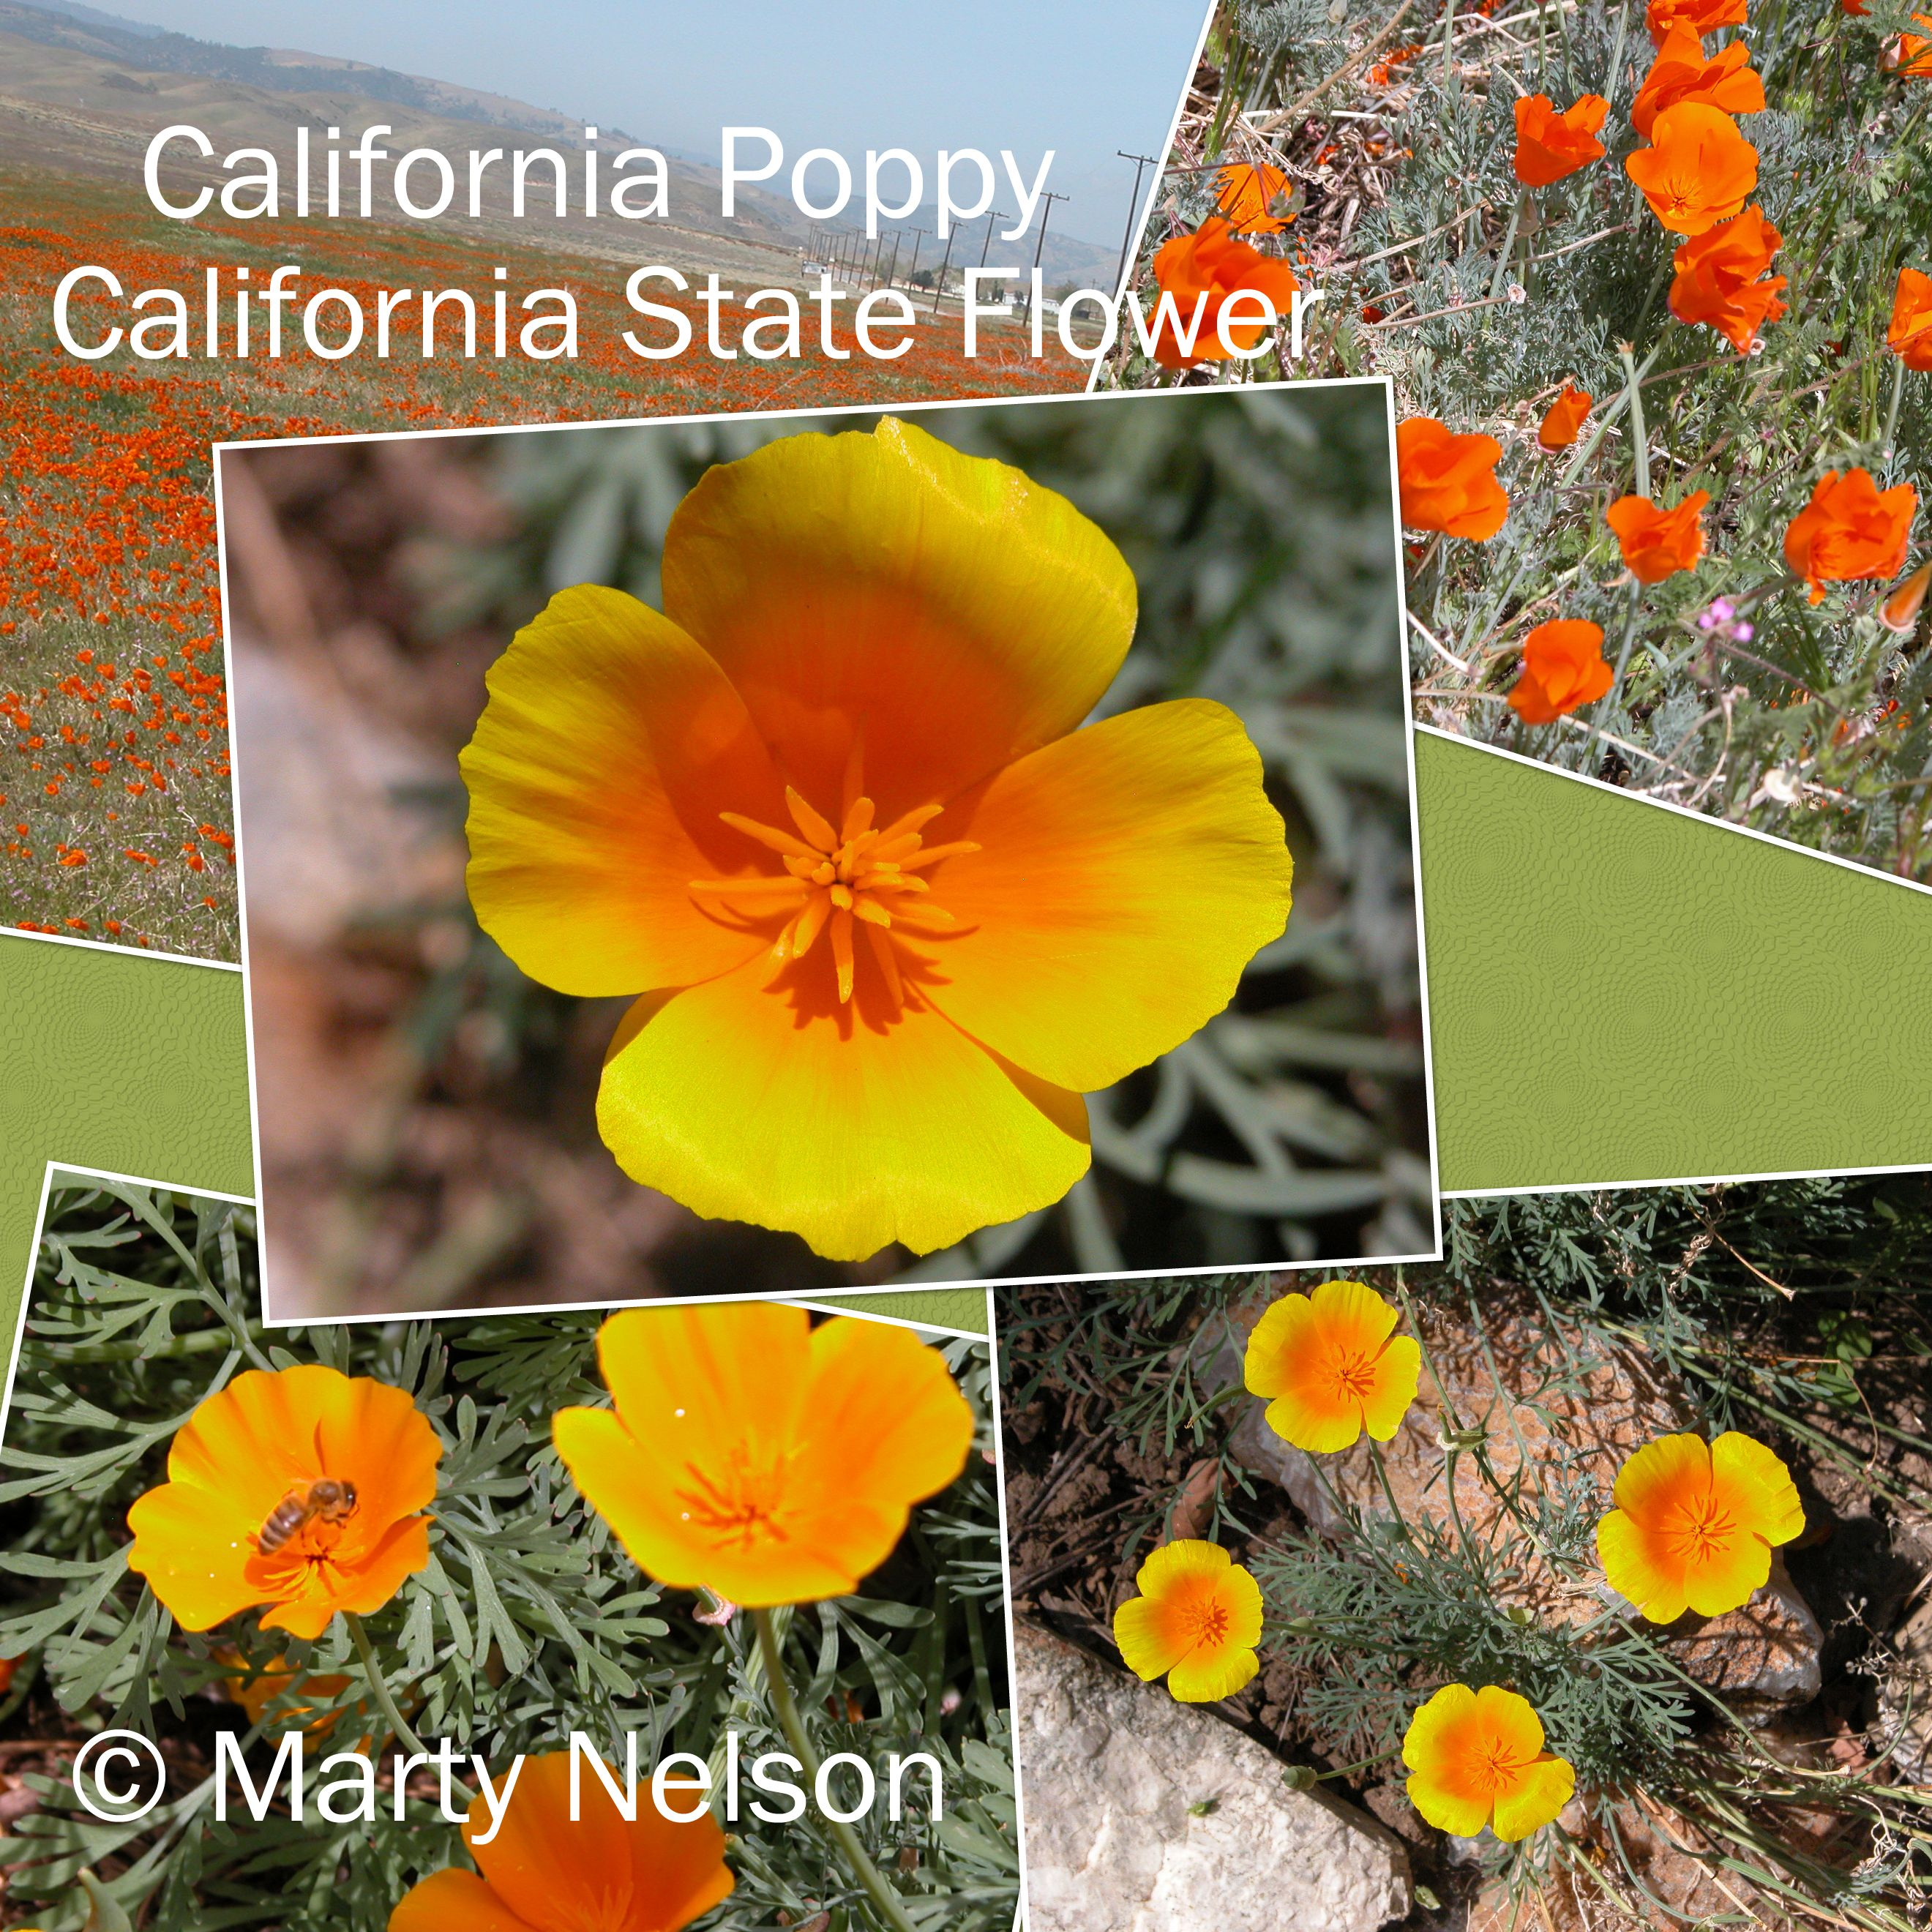 California Poppy California State Flower You May Freely Use This